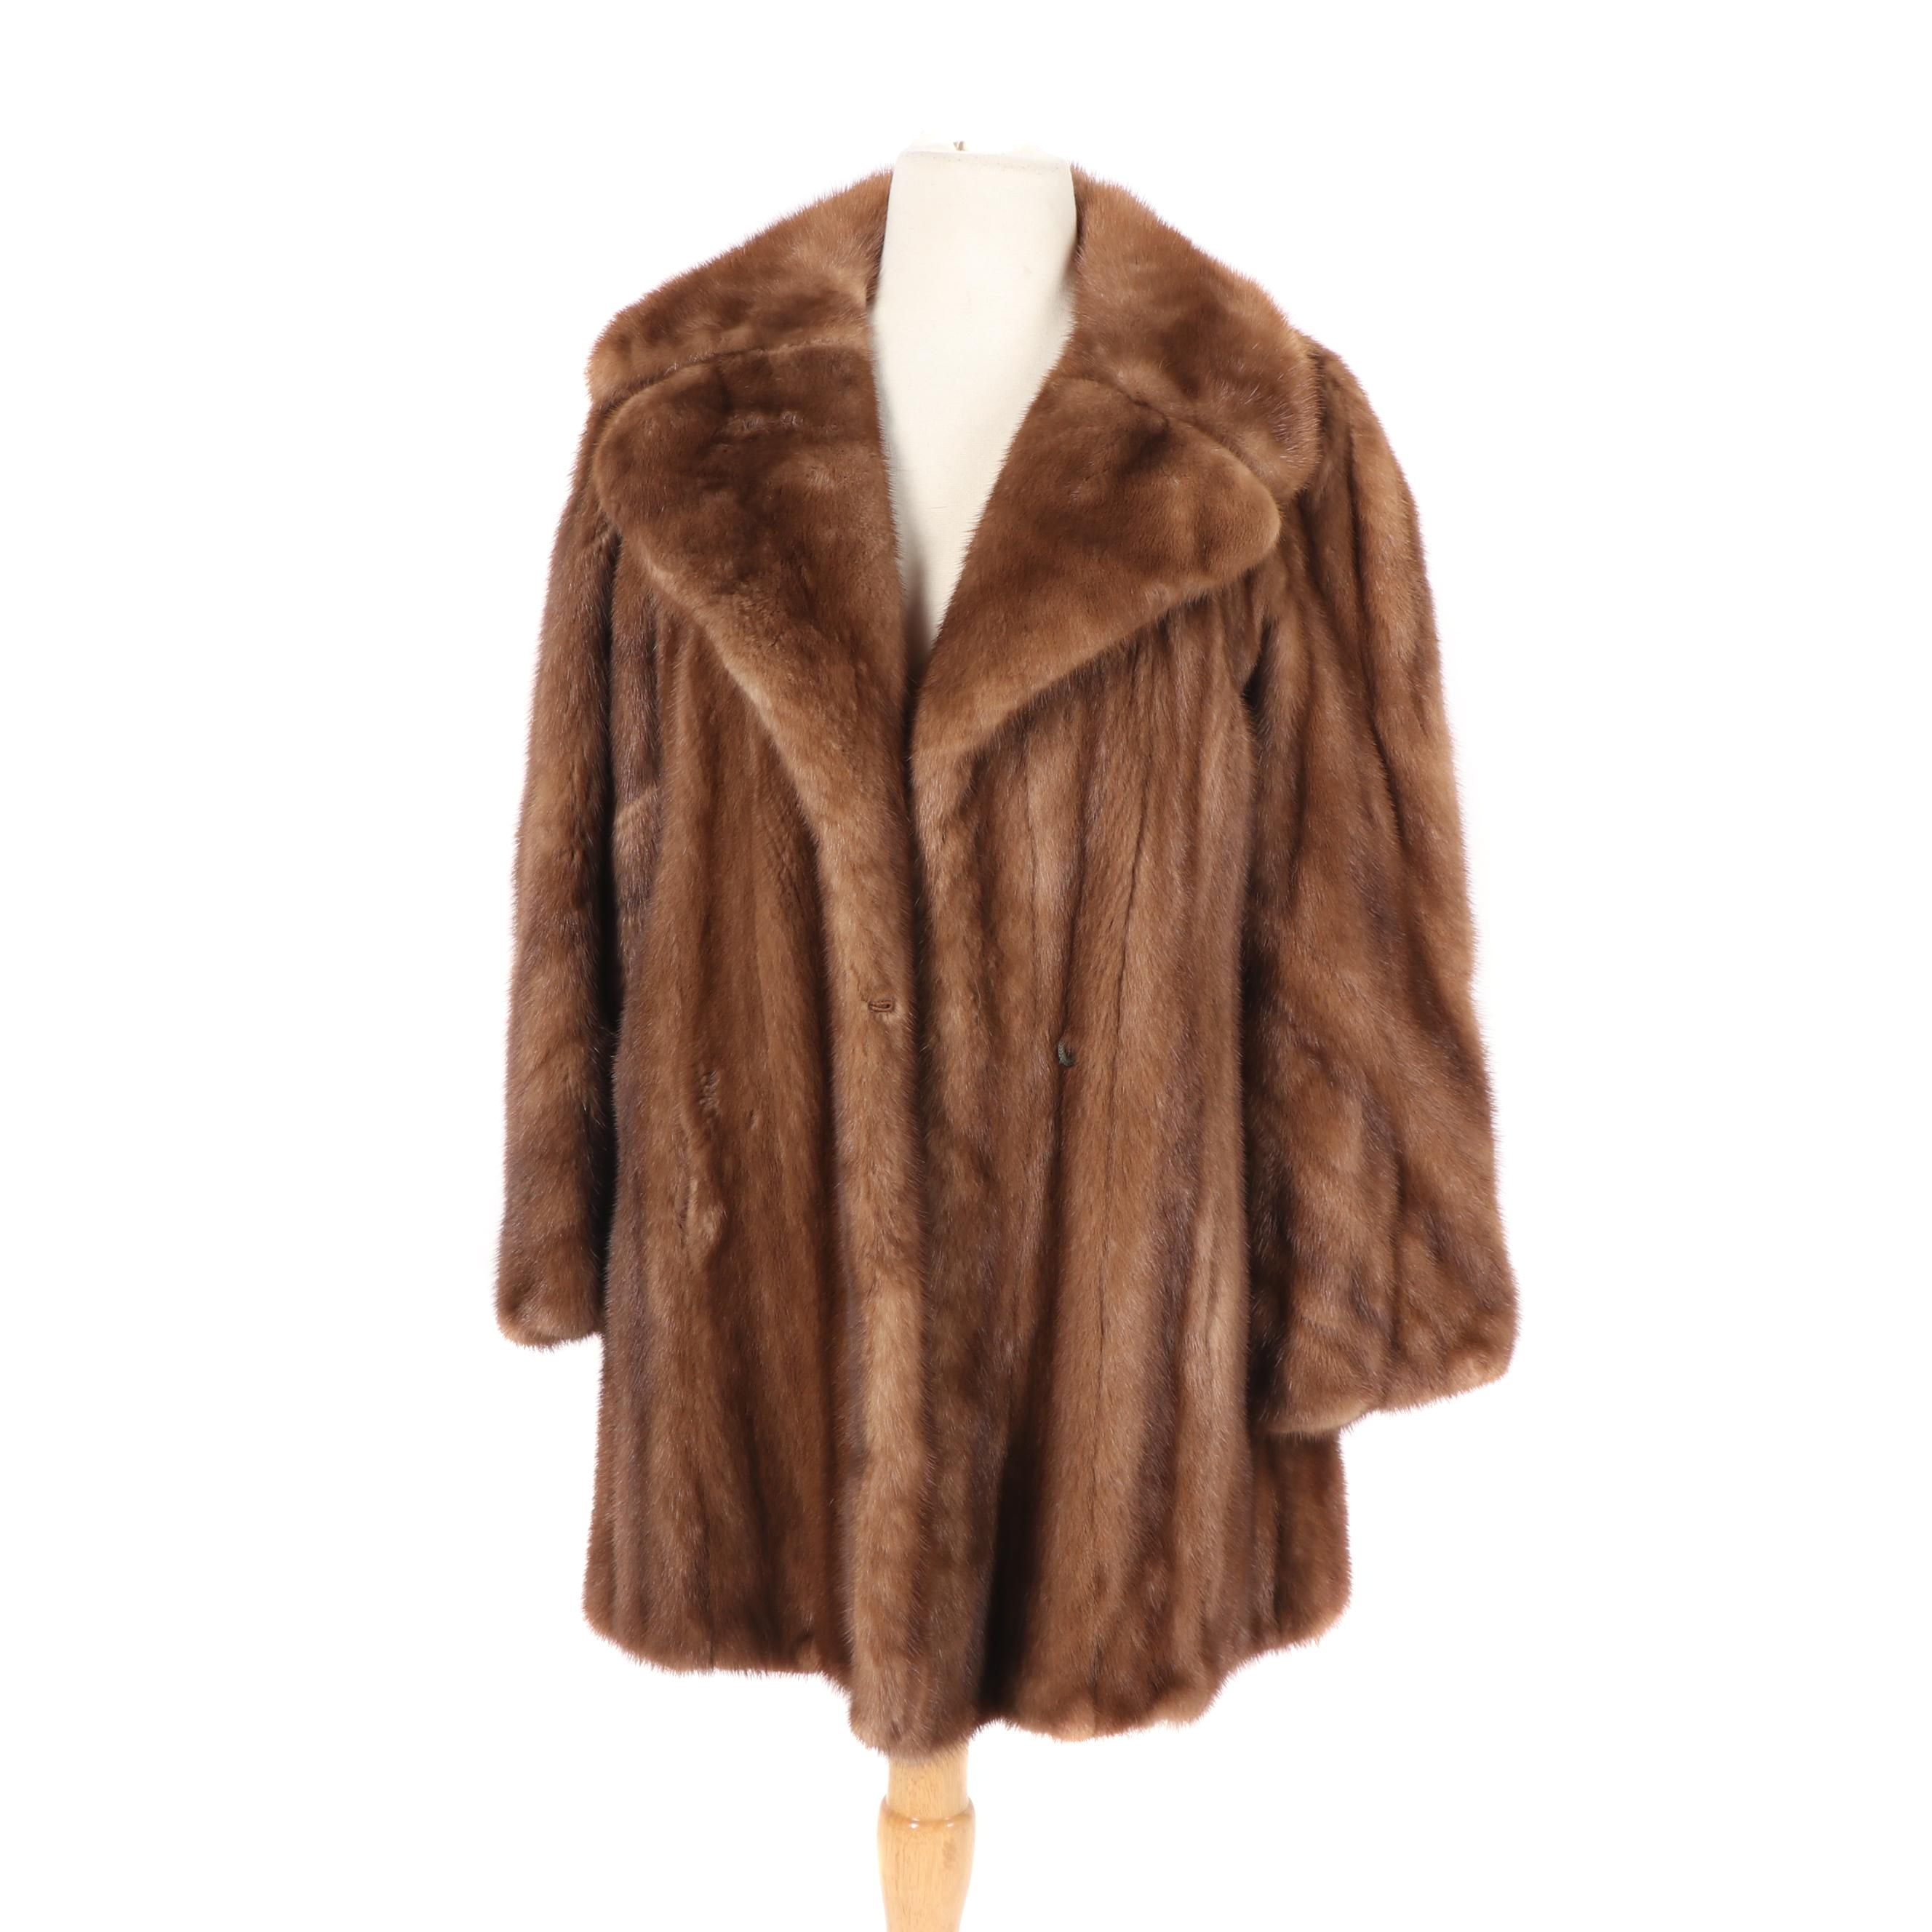 Women's Koslow's Demi-Buff Mink Fur Jacket